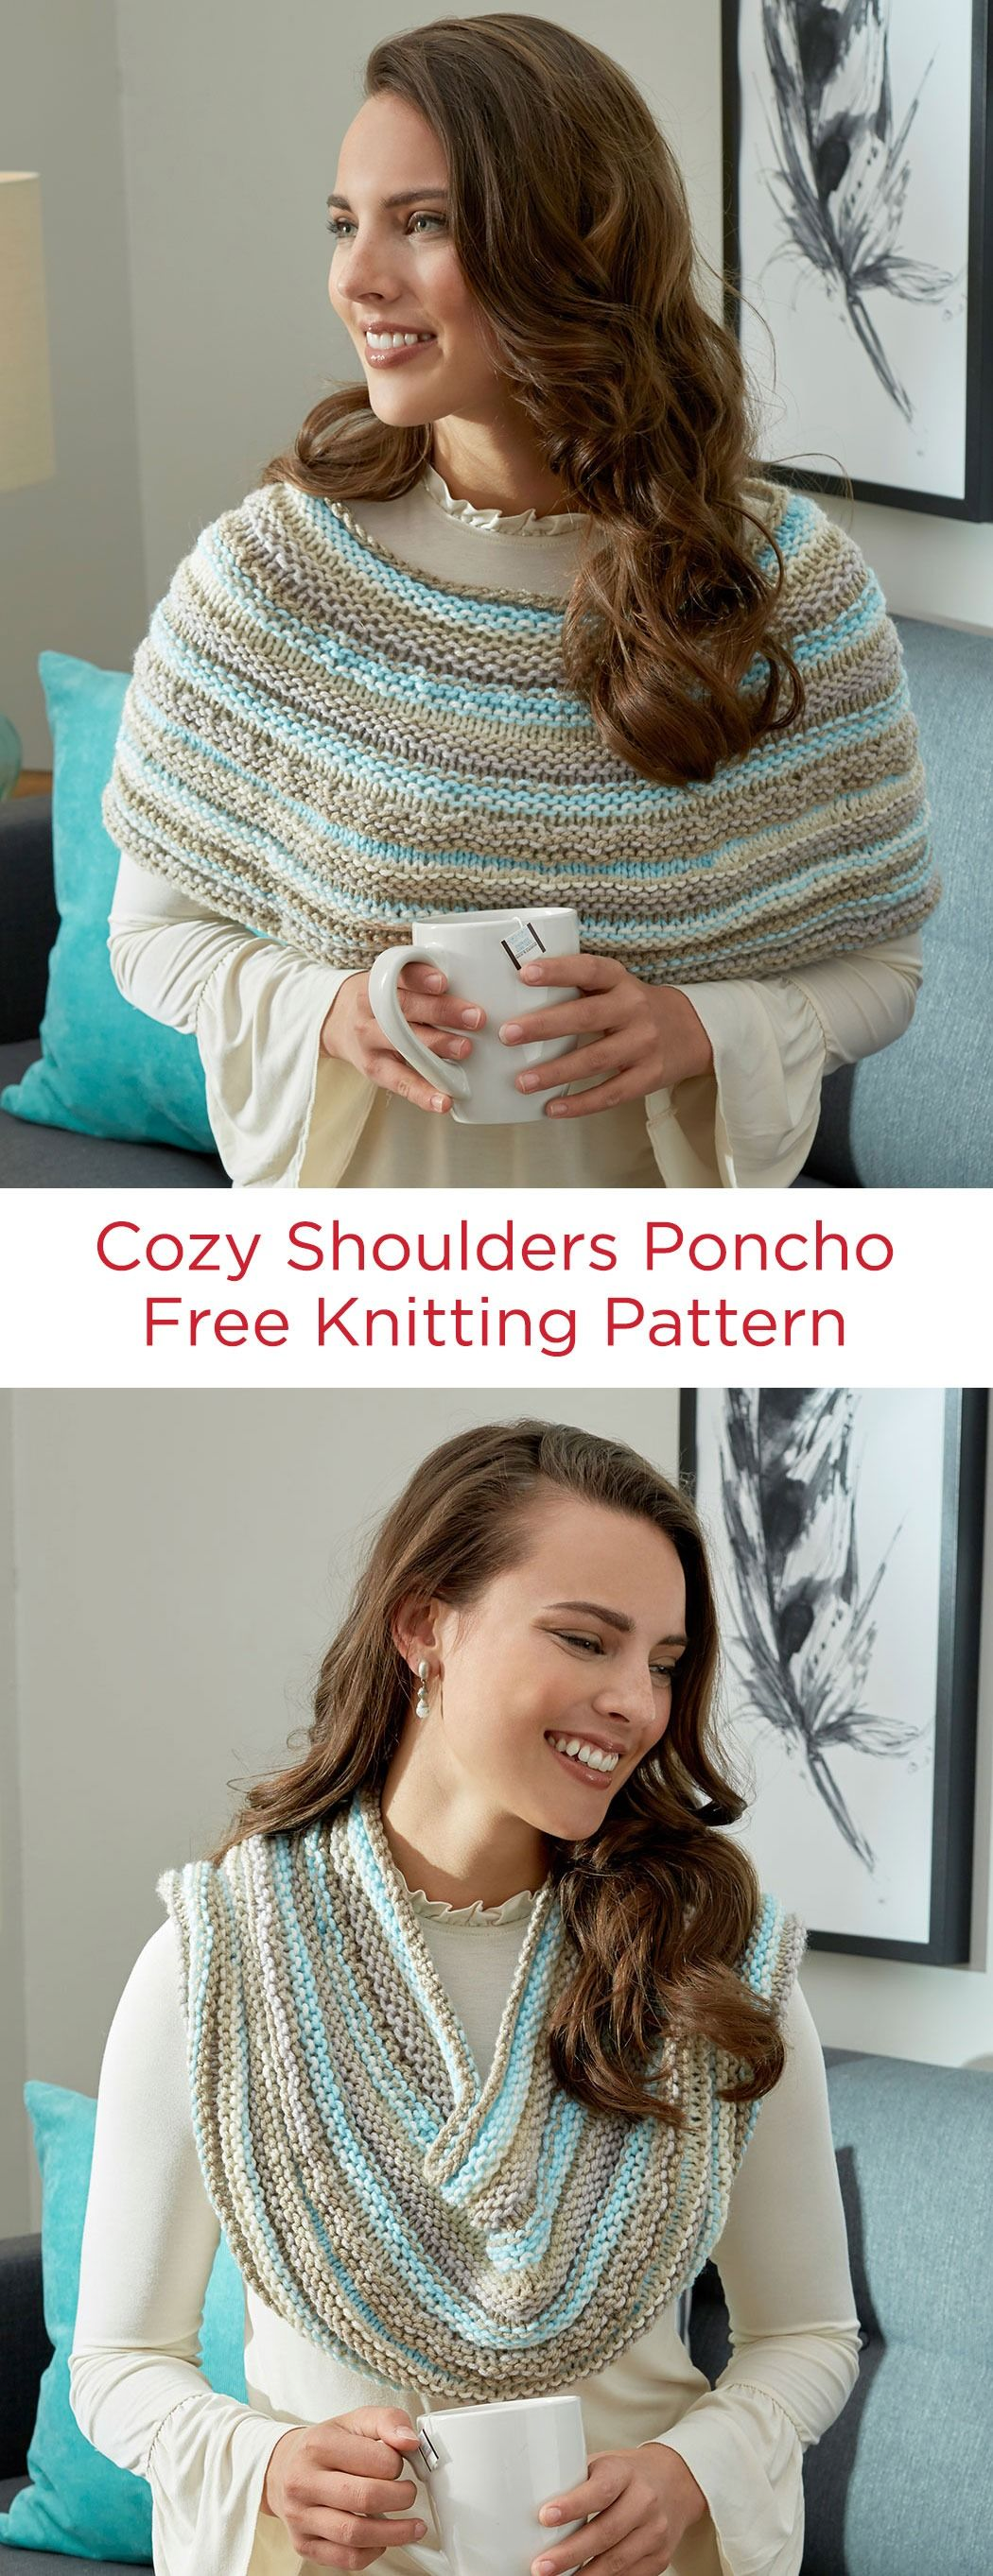 Cozy shoulders poncho free knitting pattern in red heart